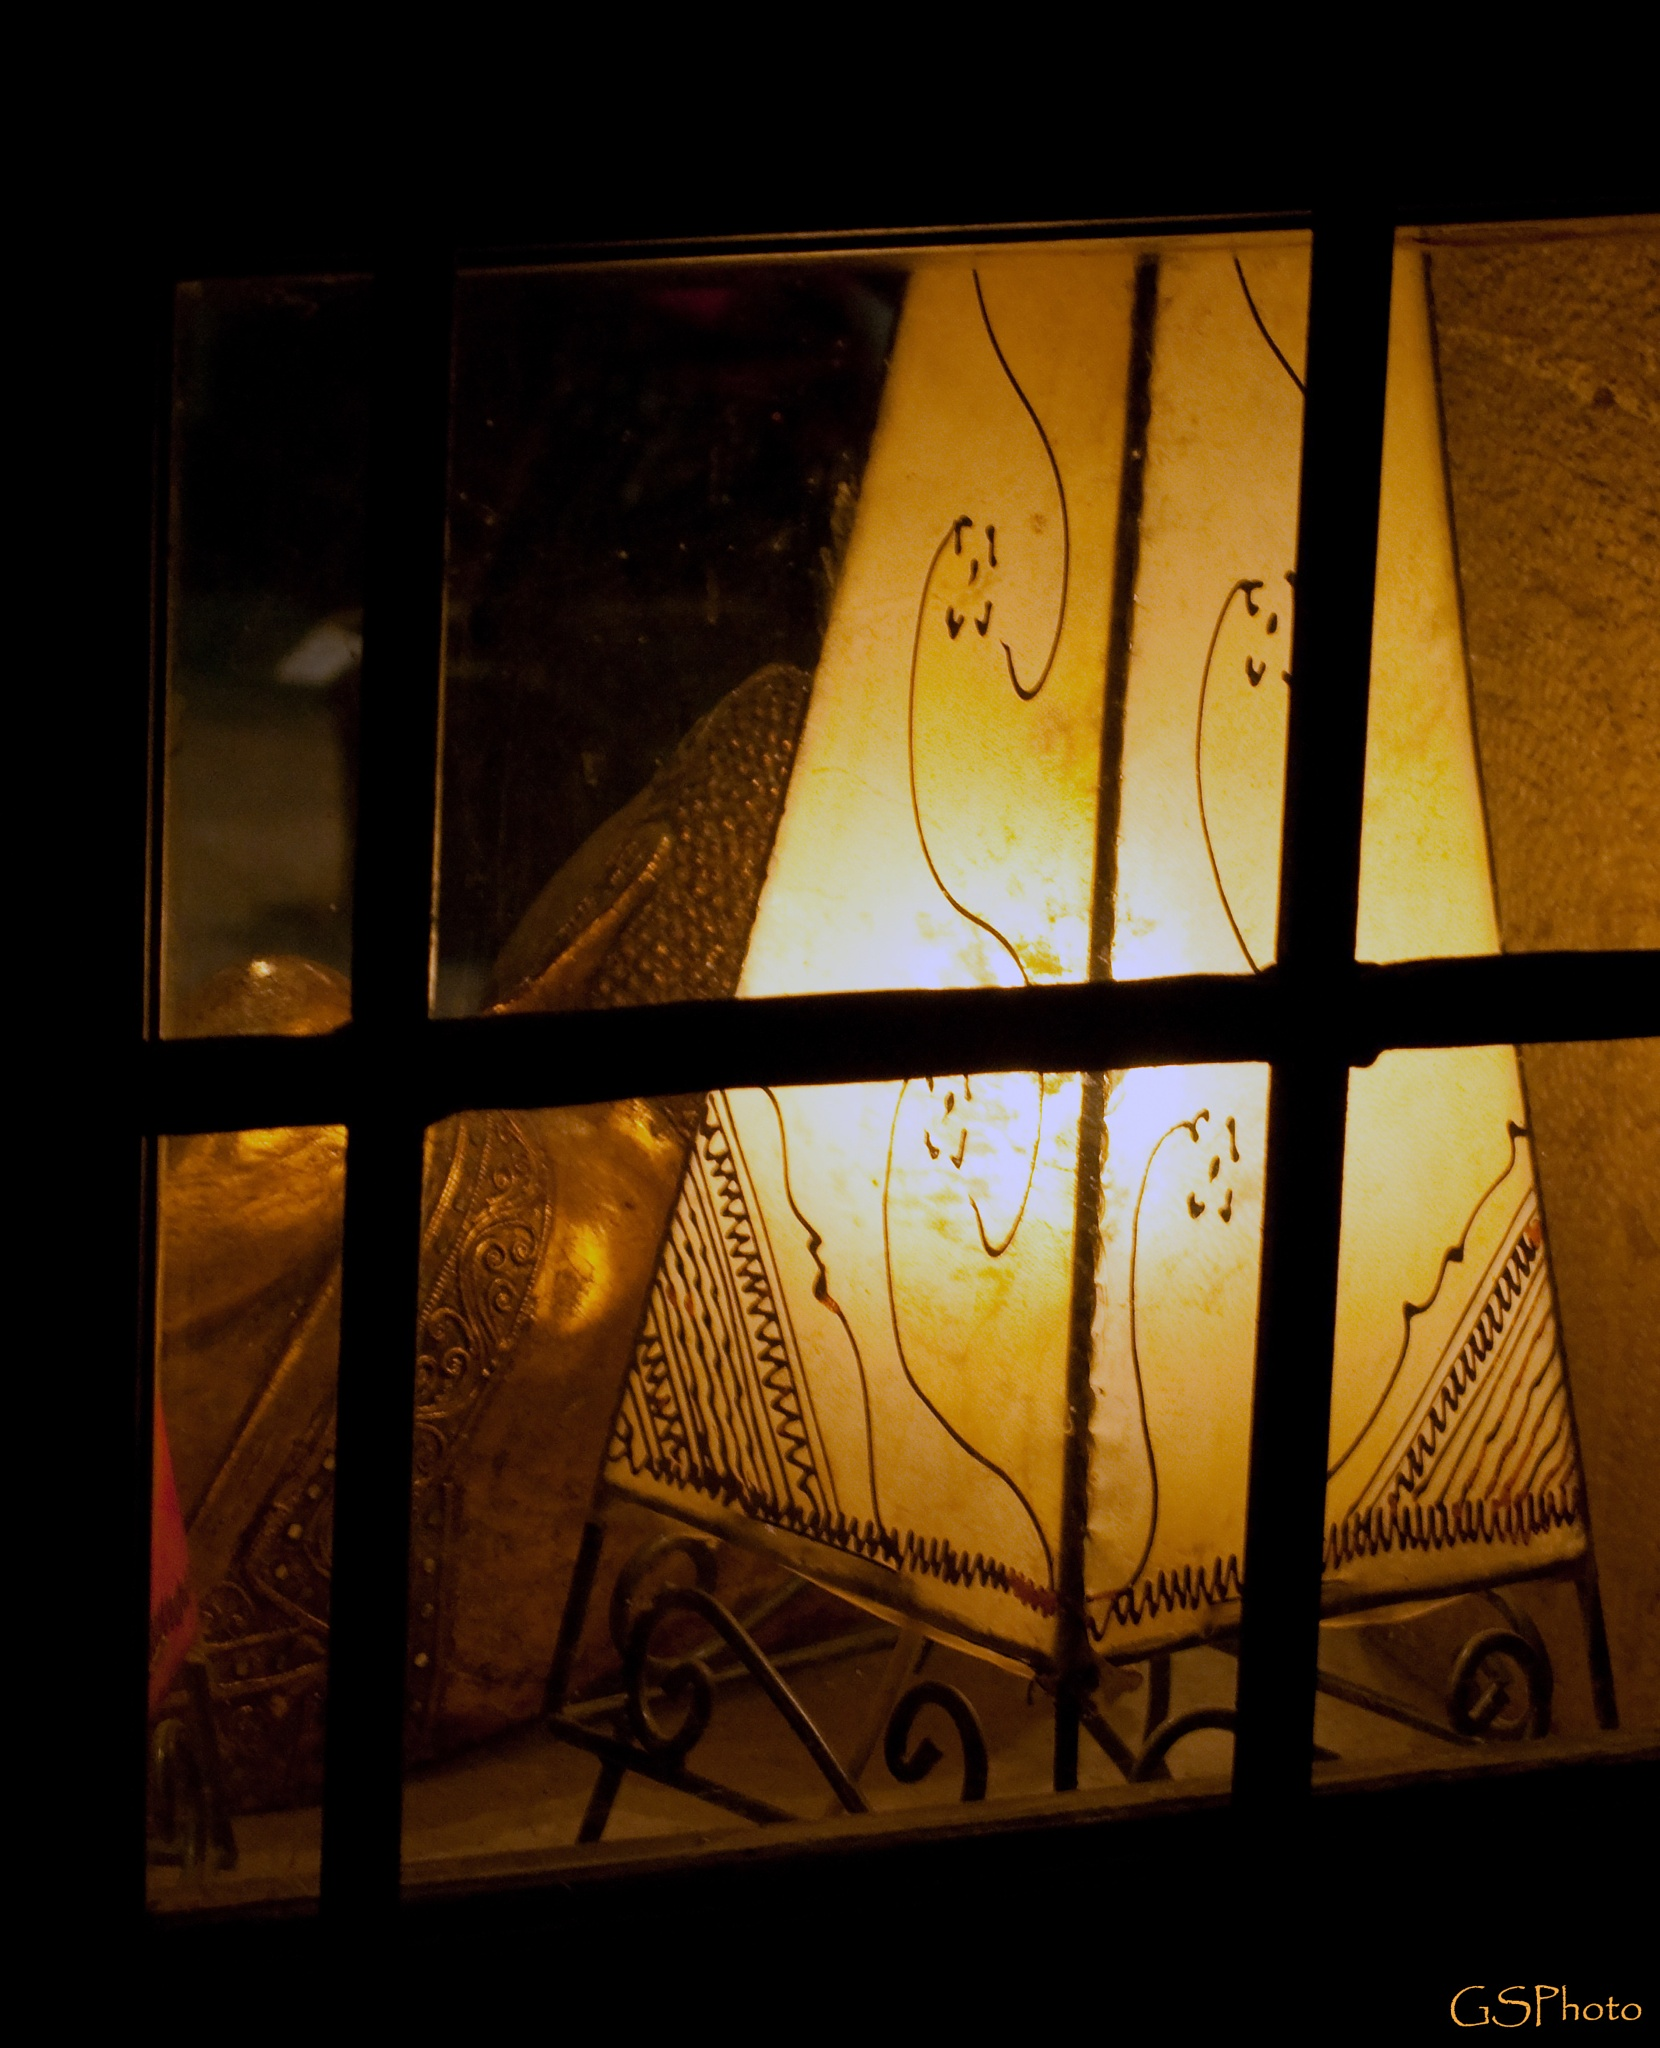 The window. by GSPhoto